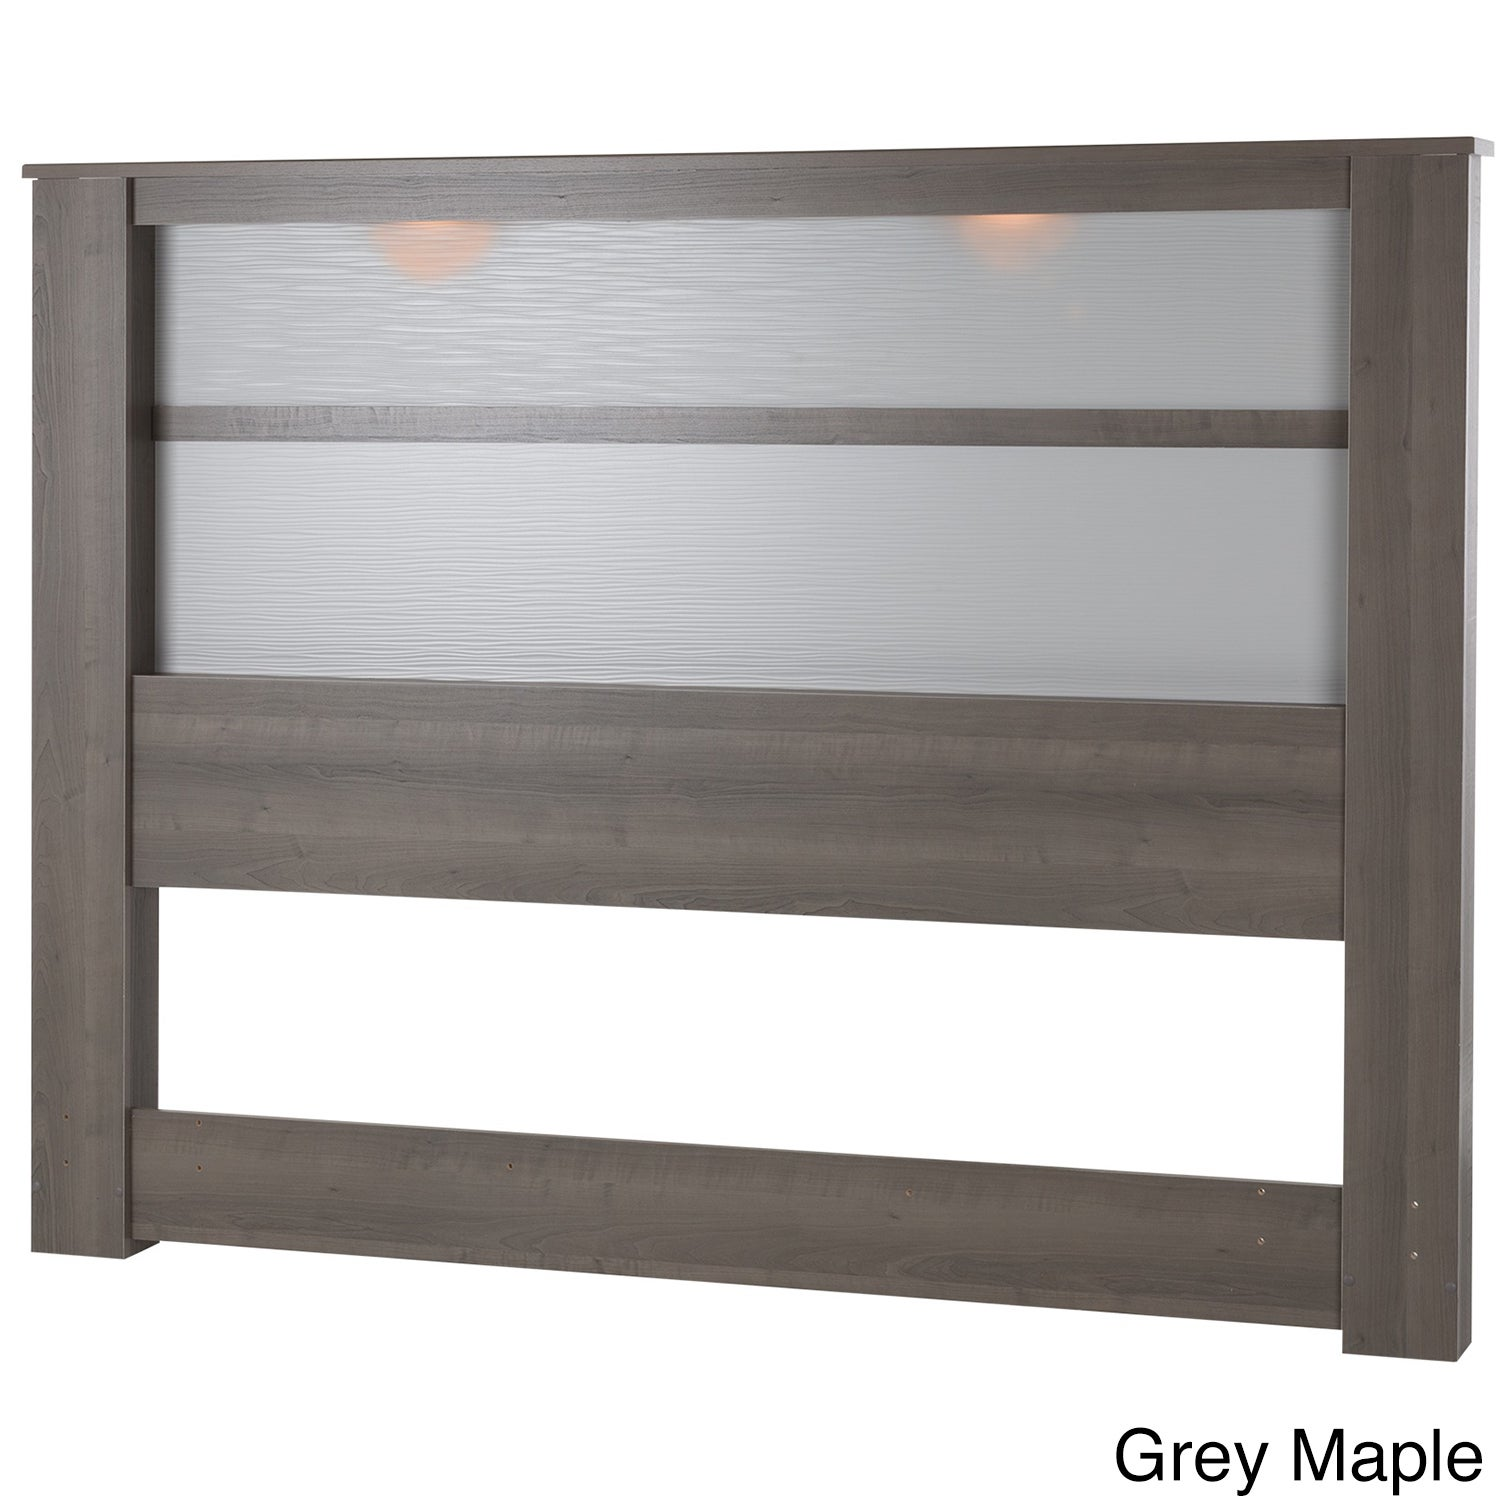 King-Size Wooden Headboard with Inset Lights (Grey Maple)